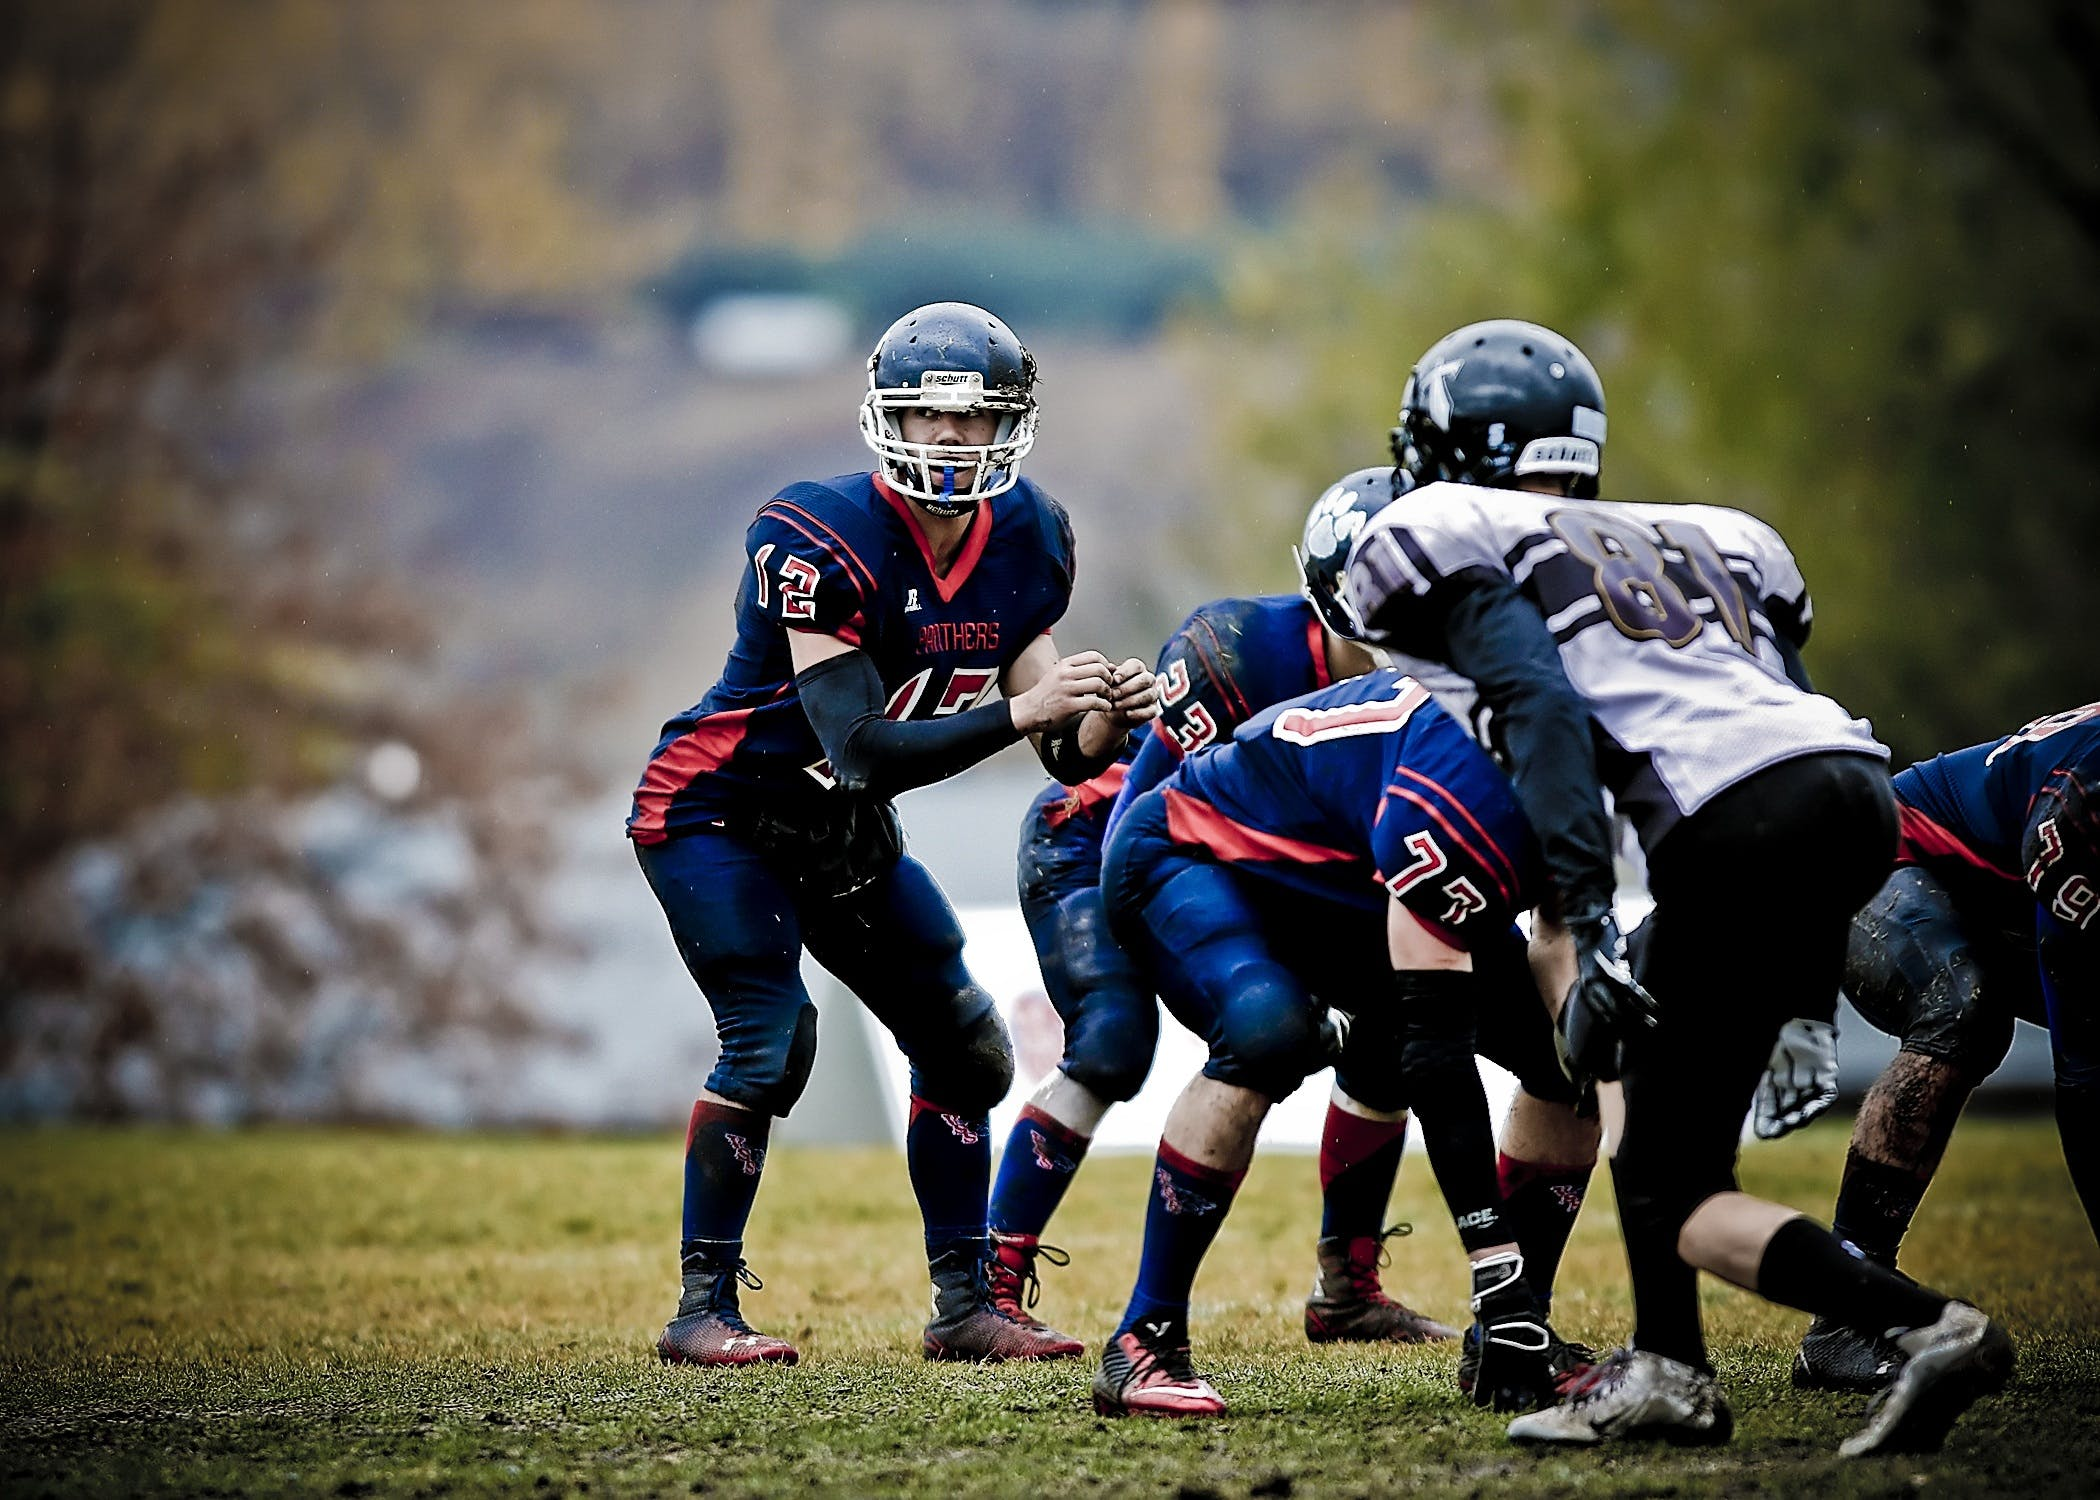 Free stock photo of grass, sport, game, competition